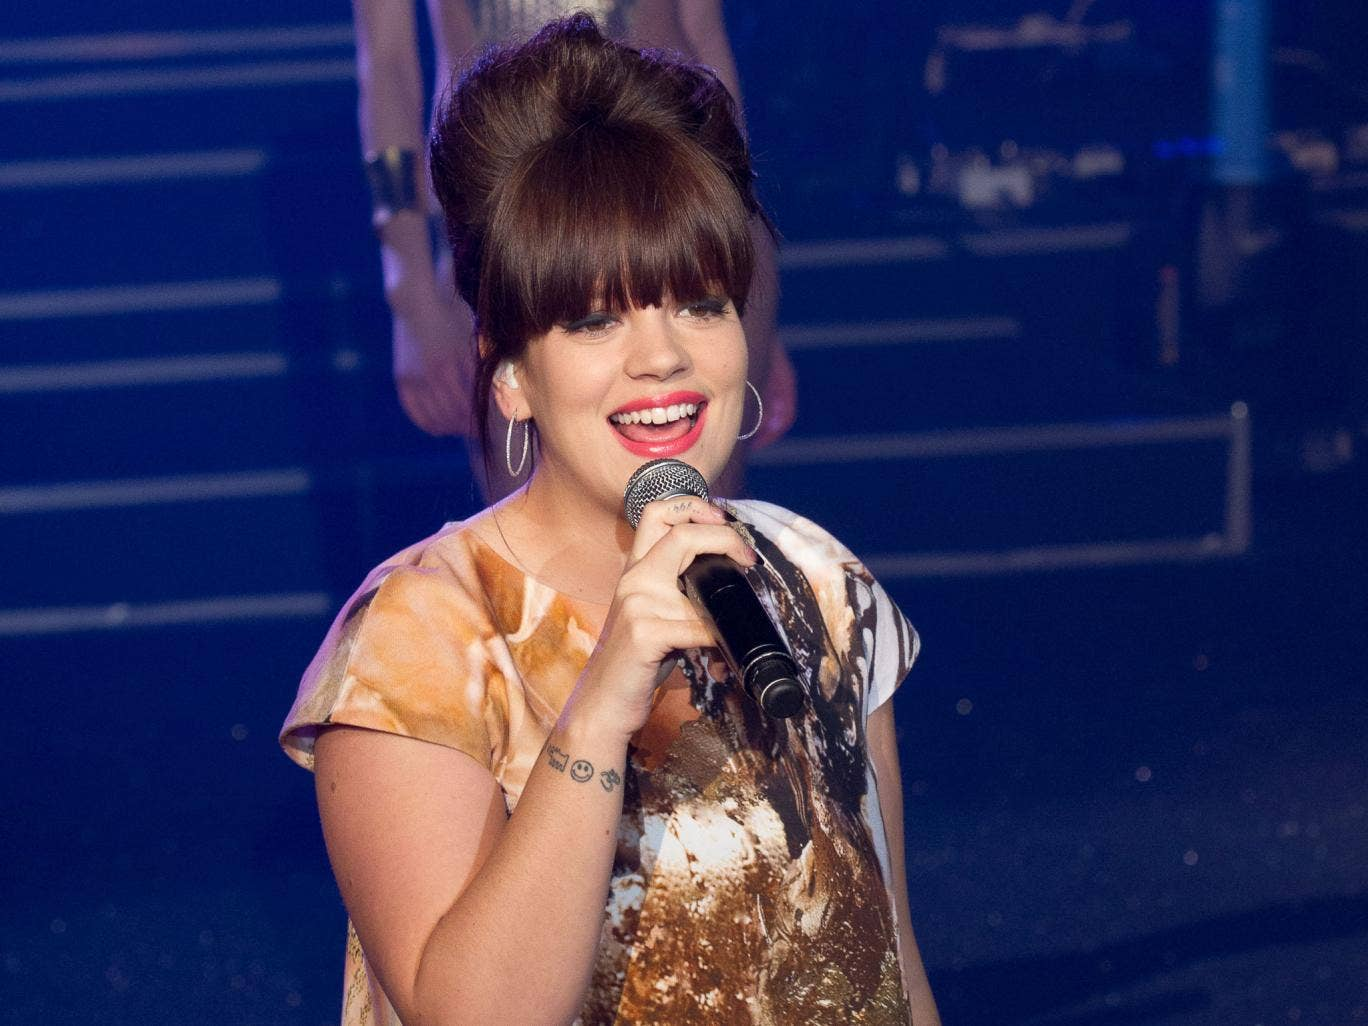 Lily Allen is set to record a Keane song for John Lewis's Christmas TV advert